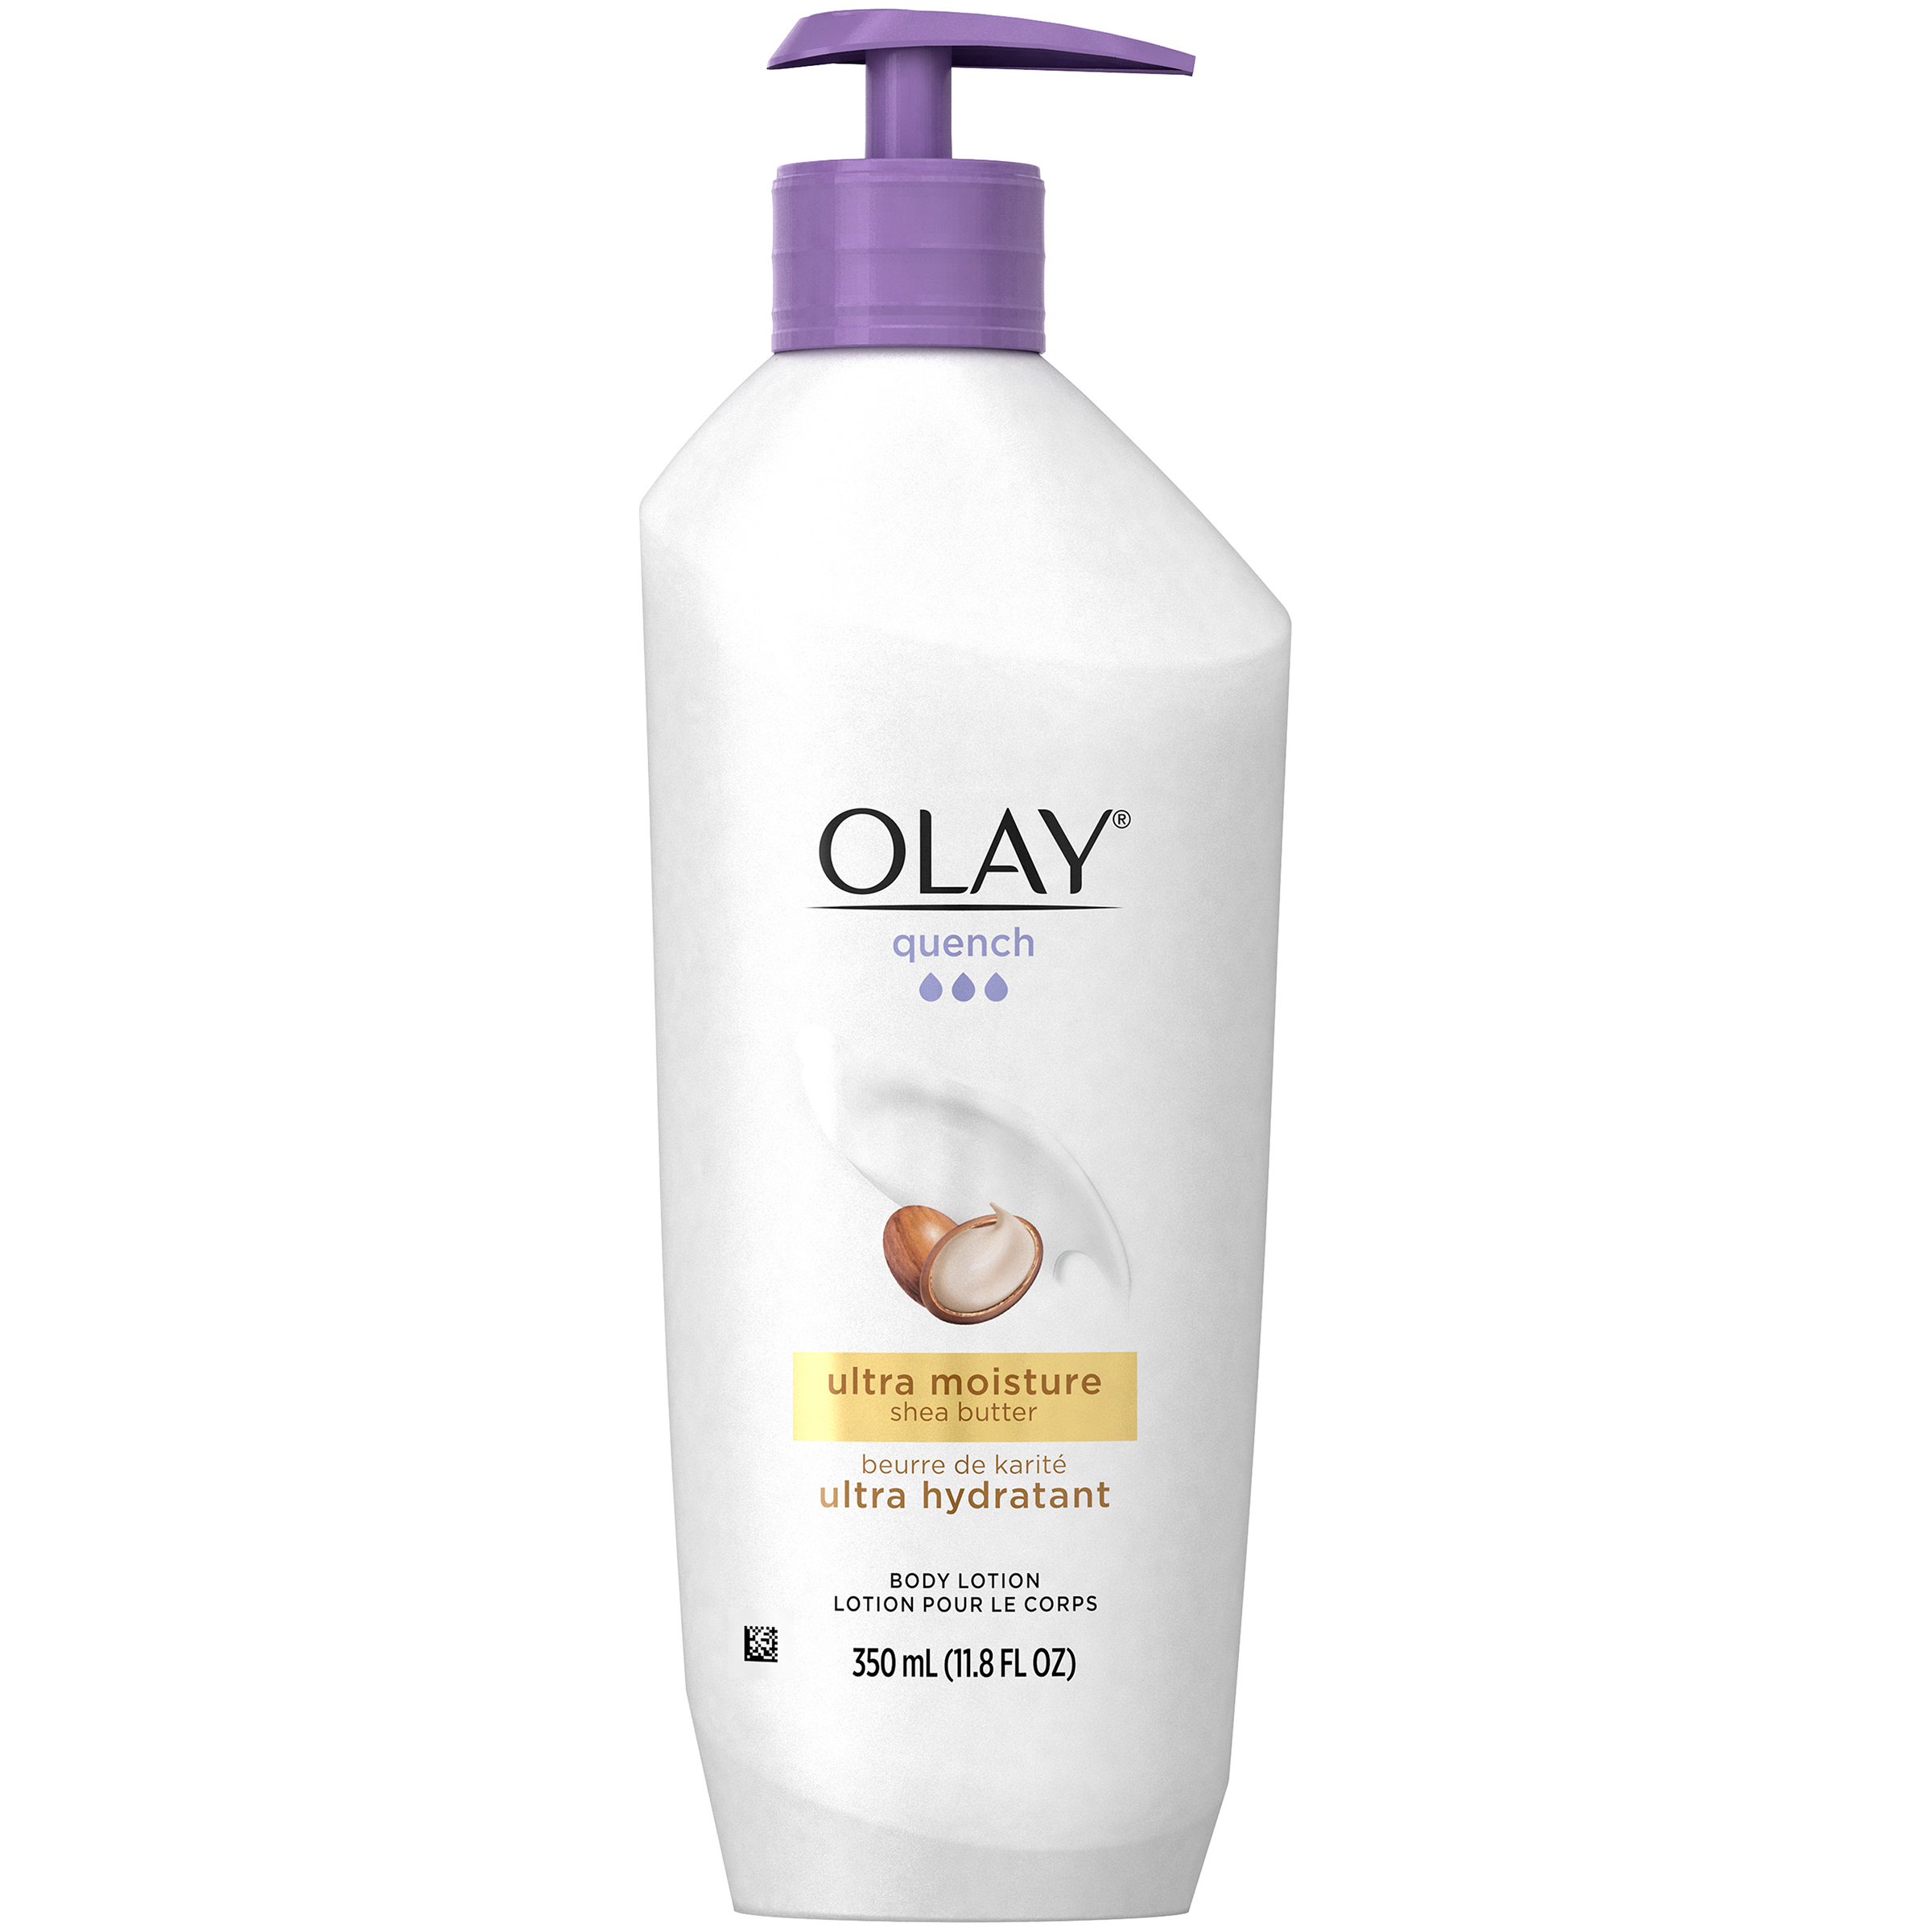 Olay Quench Ultra Moisture Shea Butter Body Lotion, 11.8 fl oz